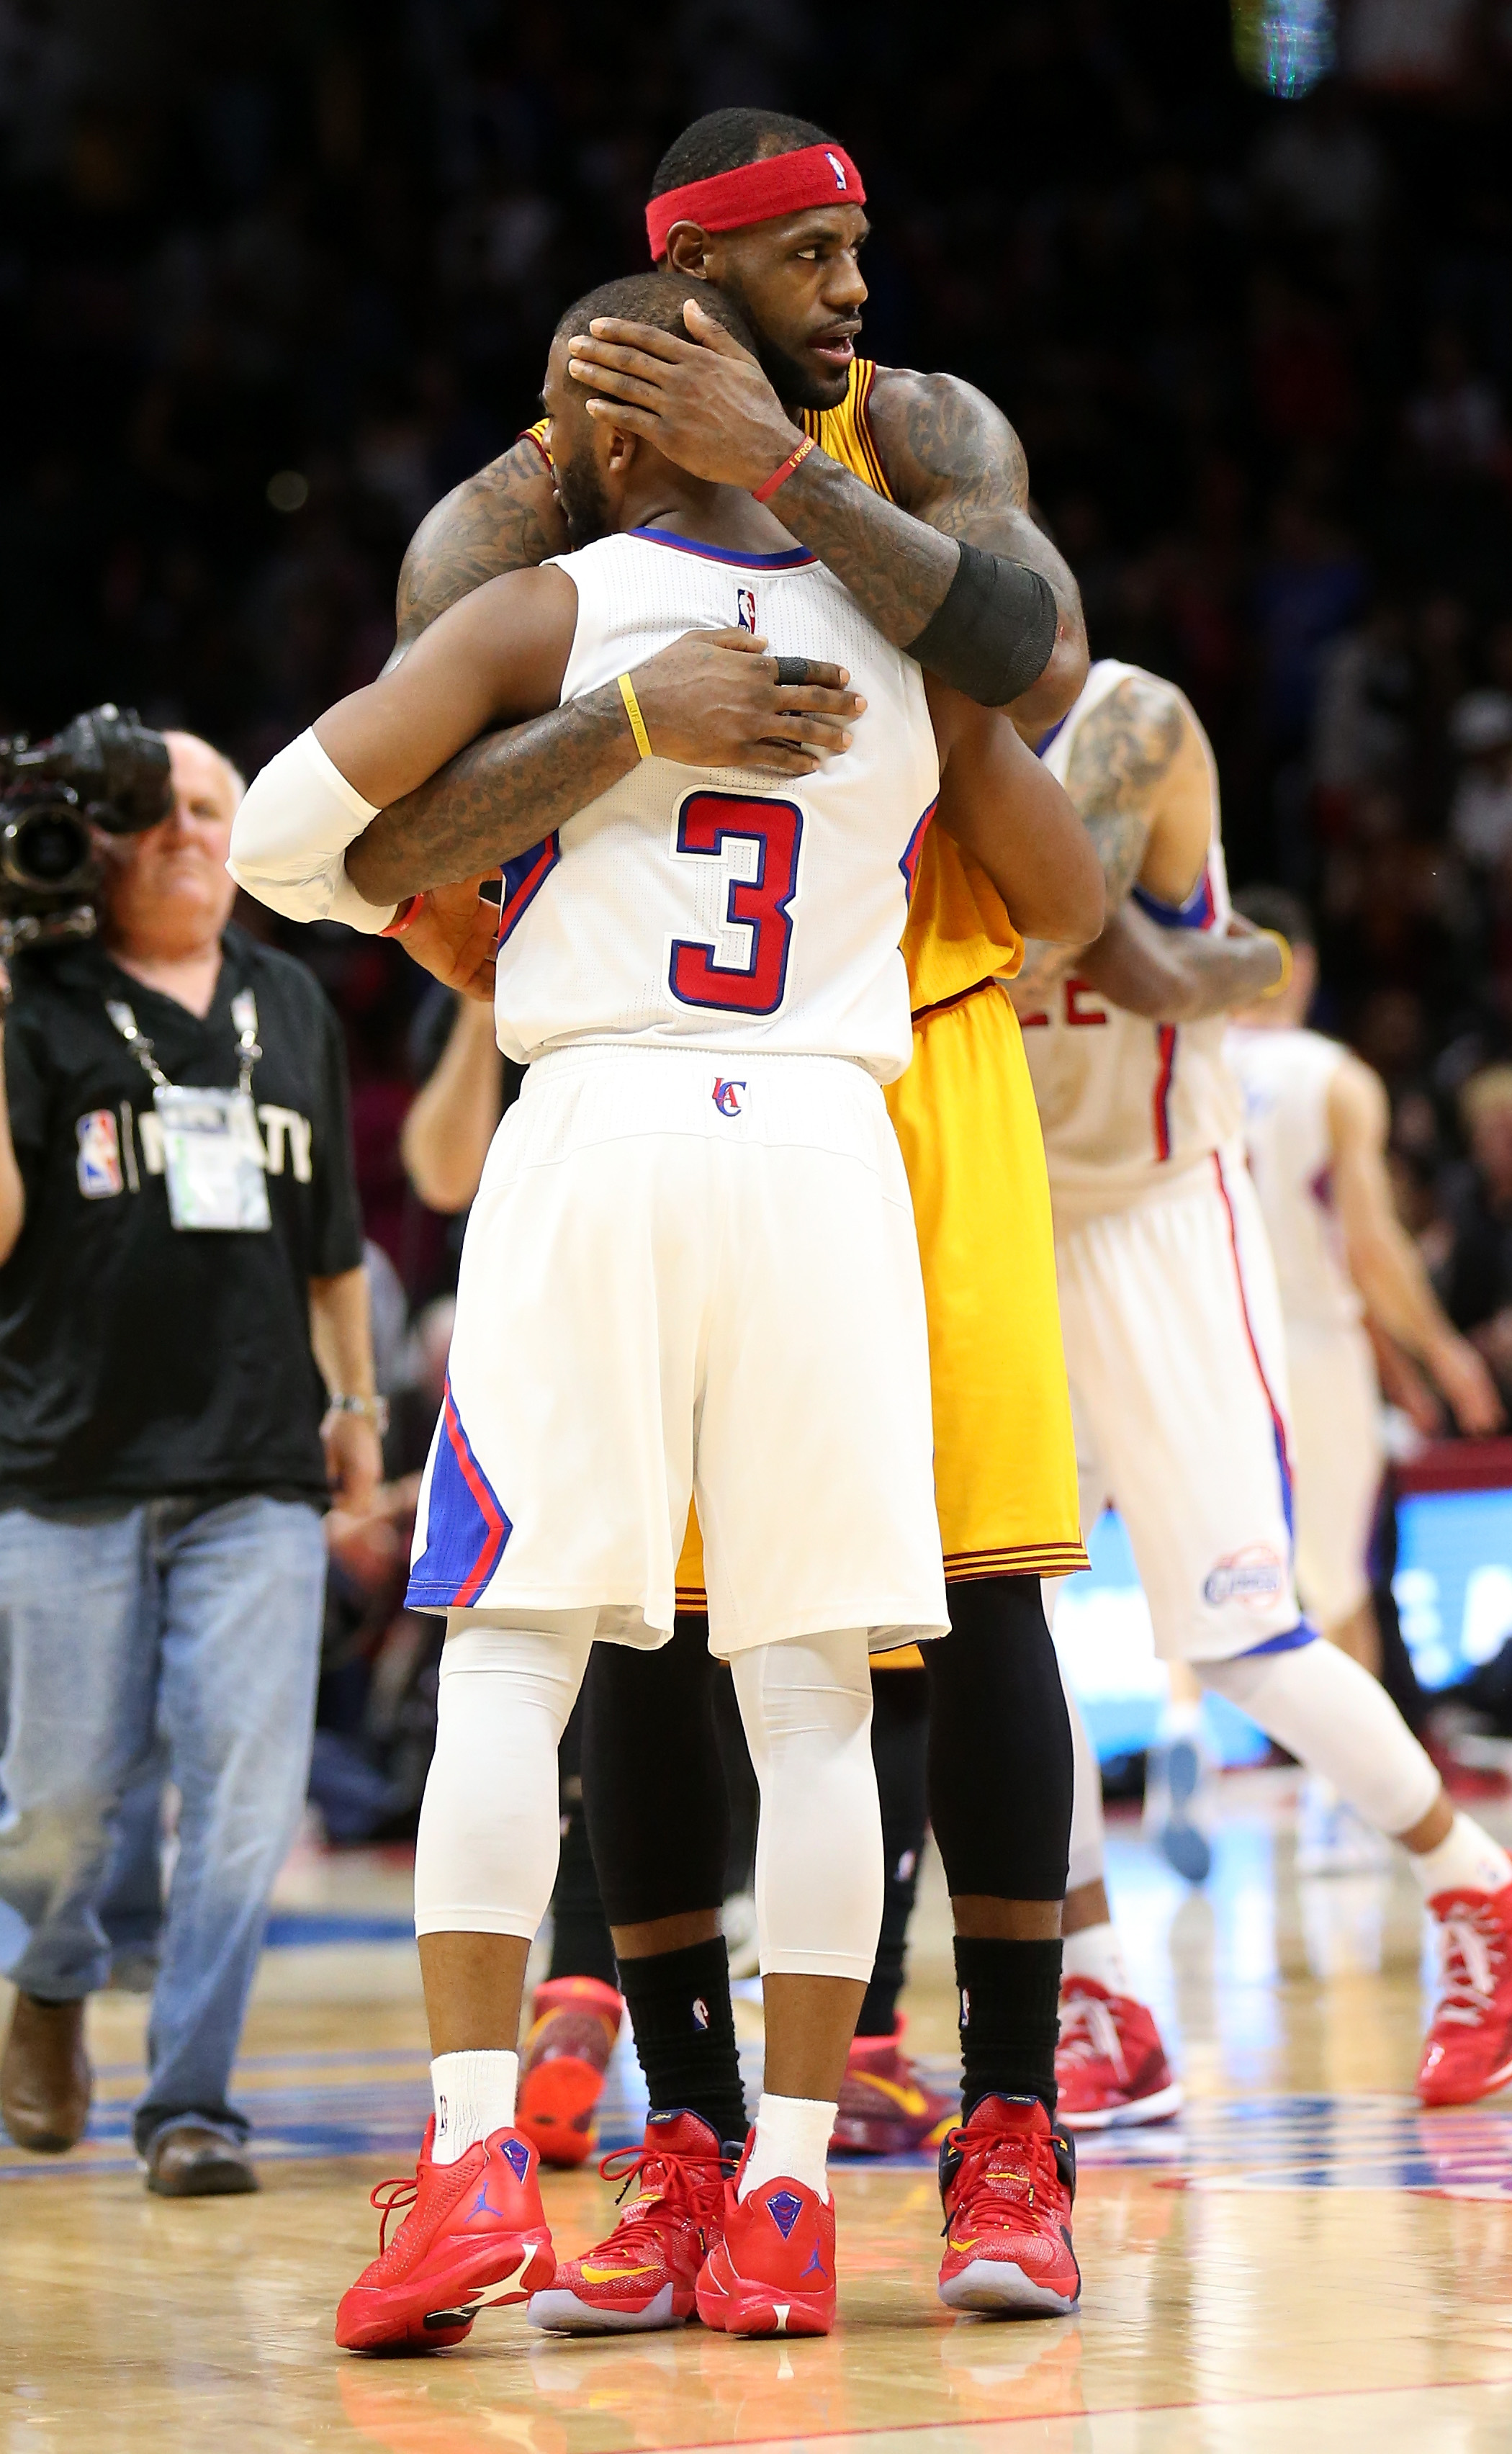 LOS ANGELES, CA - JANUARY 16:  LeBron James #23 of the Cleveland Cavaliers and Chris Paul #3 of the Los Angeles Clippers embrace after the game at Staples Center on January 16, 2015 in Los Angeles, California.  The Cavaliers won 126-121.  (Photo by Stephe